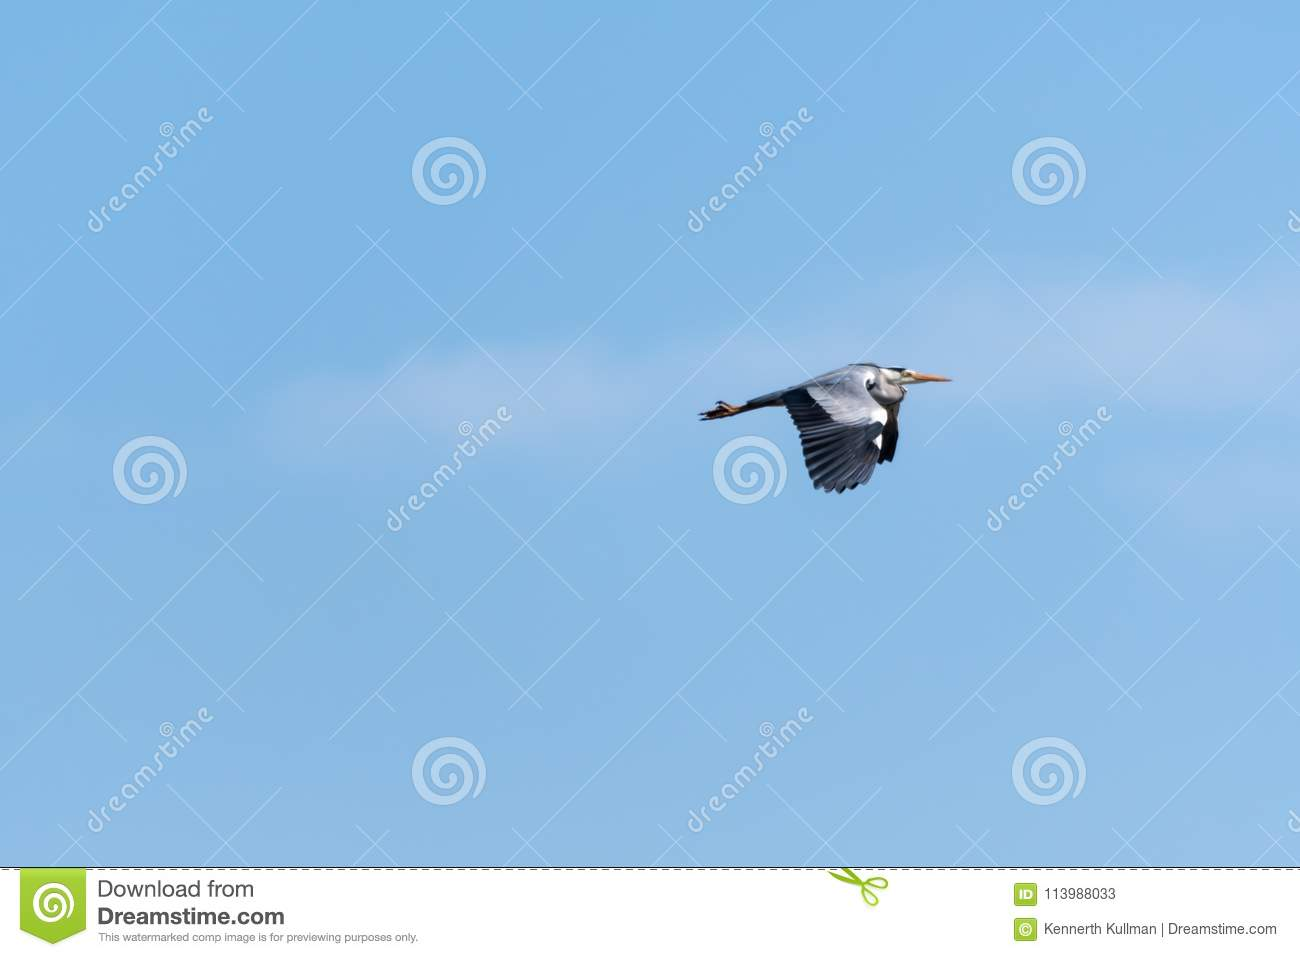 Flying Grey Heron by a blue sky